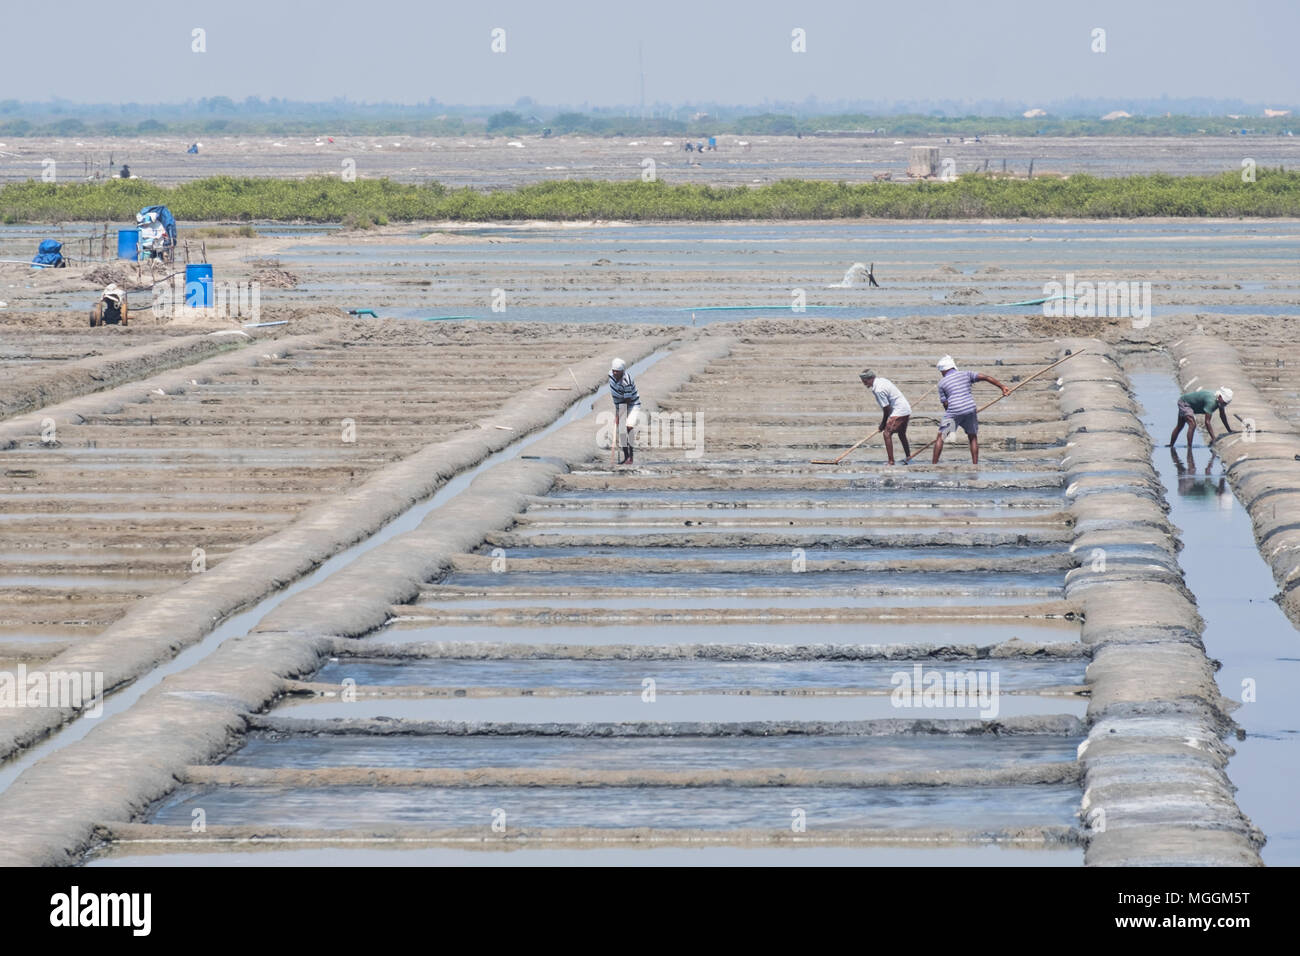 Villuppuram, India - March 18, 2018: Workers on the salt flats in the north of Tamil Nadu. The salt is separated in the pits and dried in small heaps - Stock Image